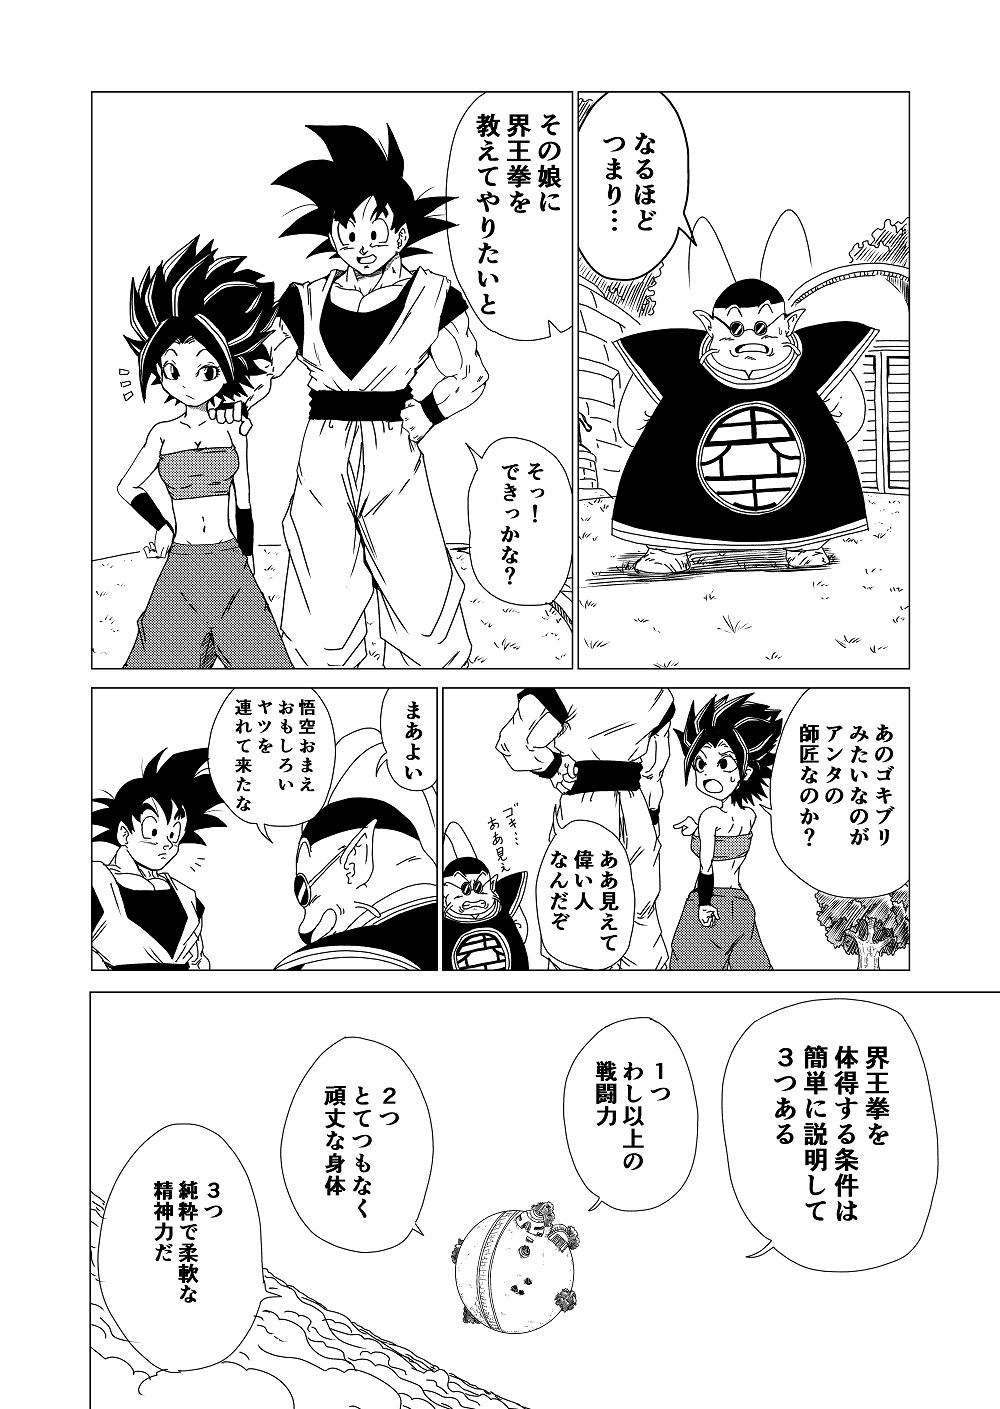 1girl 2boys antennae black_eyes black_hair caulifla clouds commentary commentary_request dougi doujinshi dragon_ball dragon_ball_super grin highres misaki339 monochrome moon multiple_boys north_kaiou north_kaiou's_planet planet pointing_at_another saiyan smile son_goku strapless sunglasses translation_request tubetop whiskers